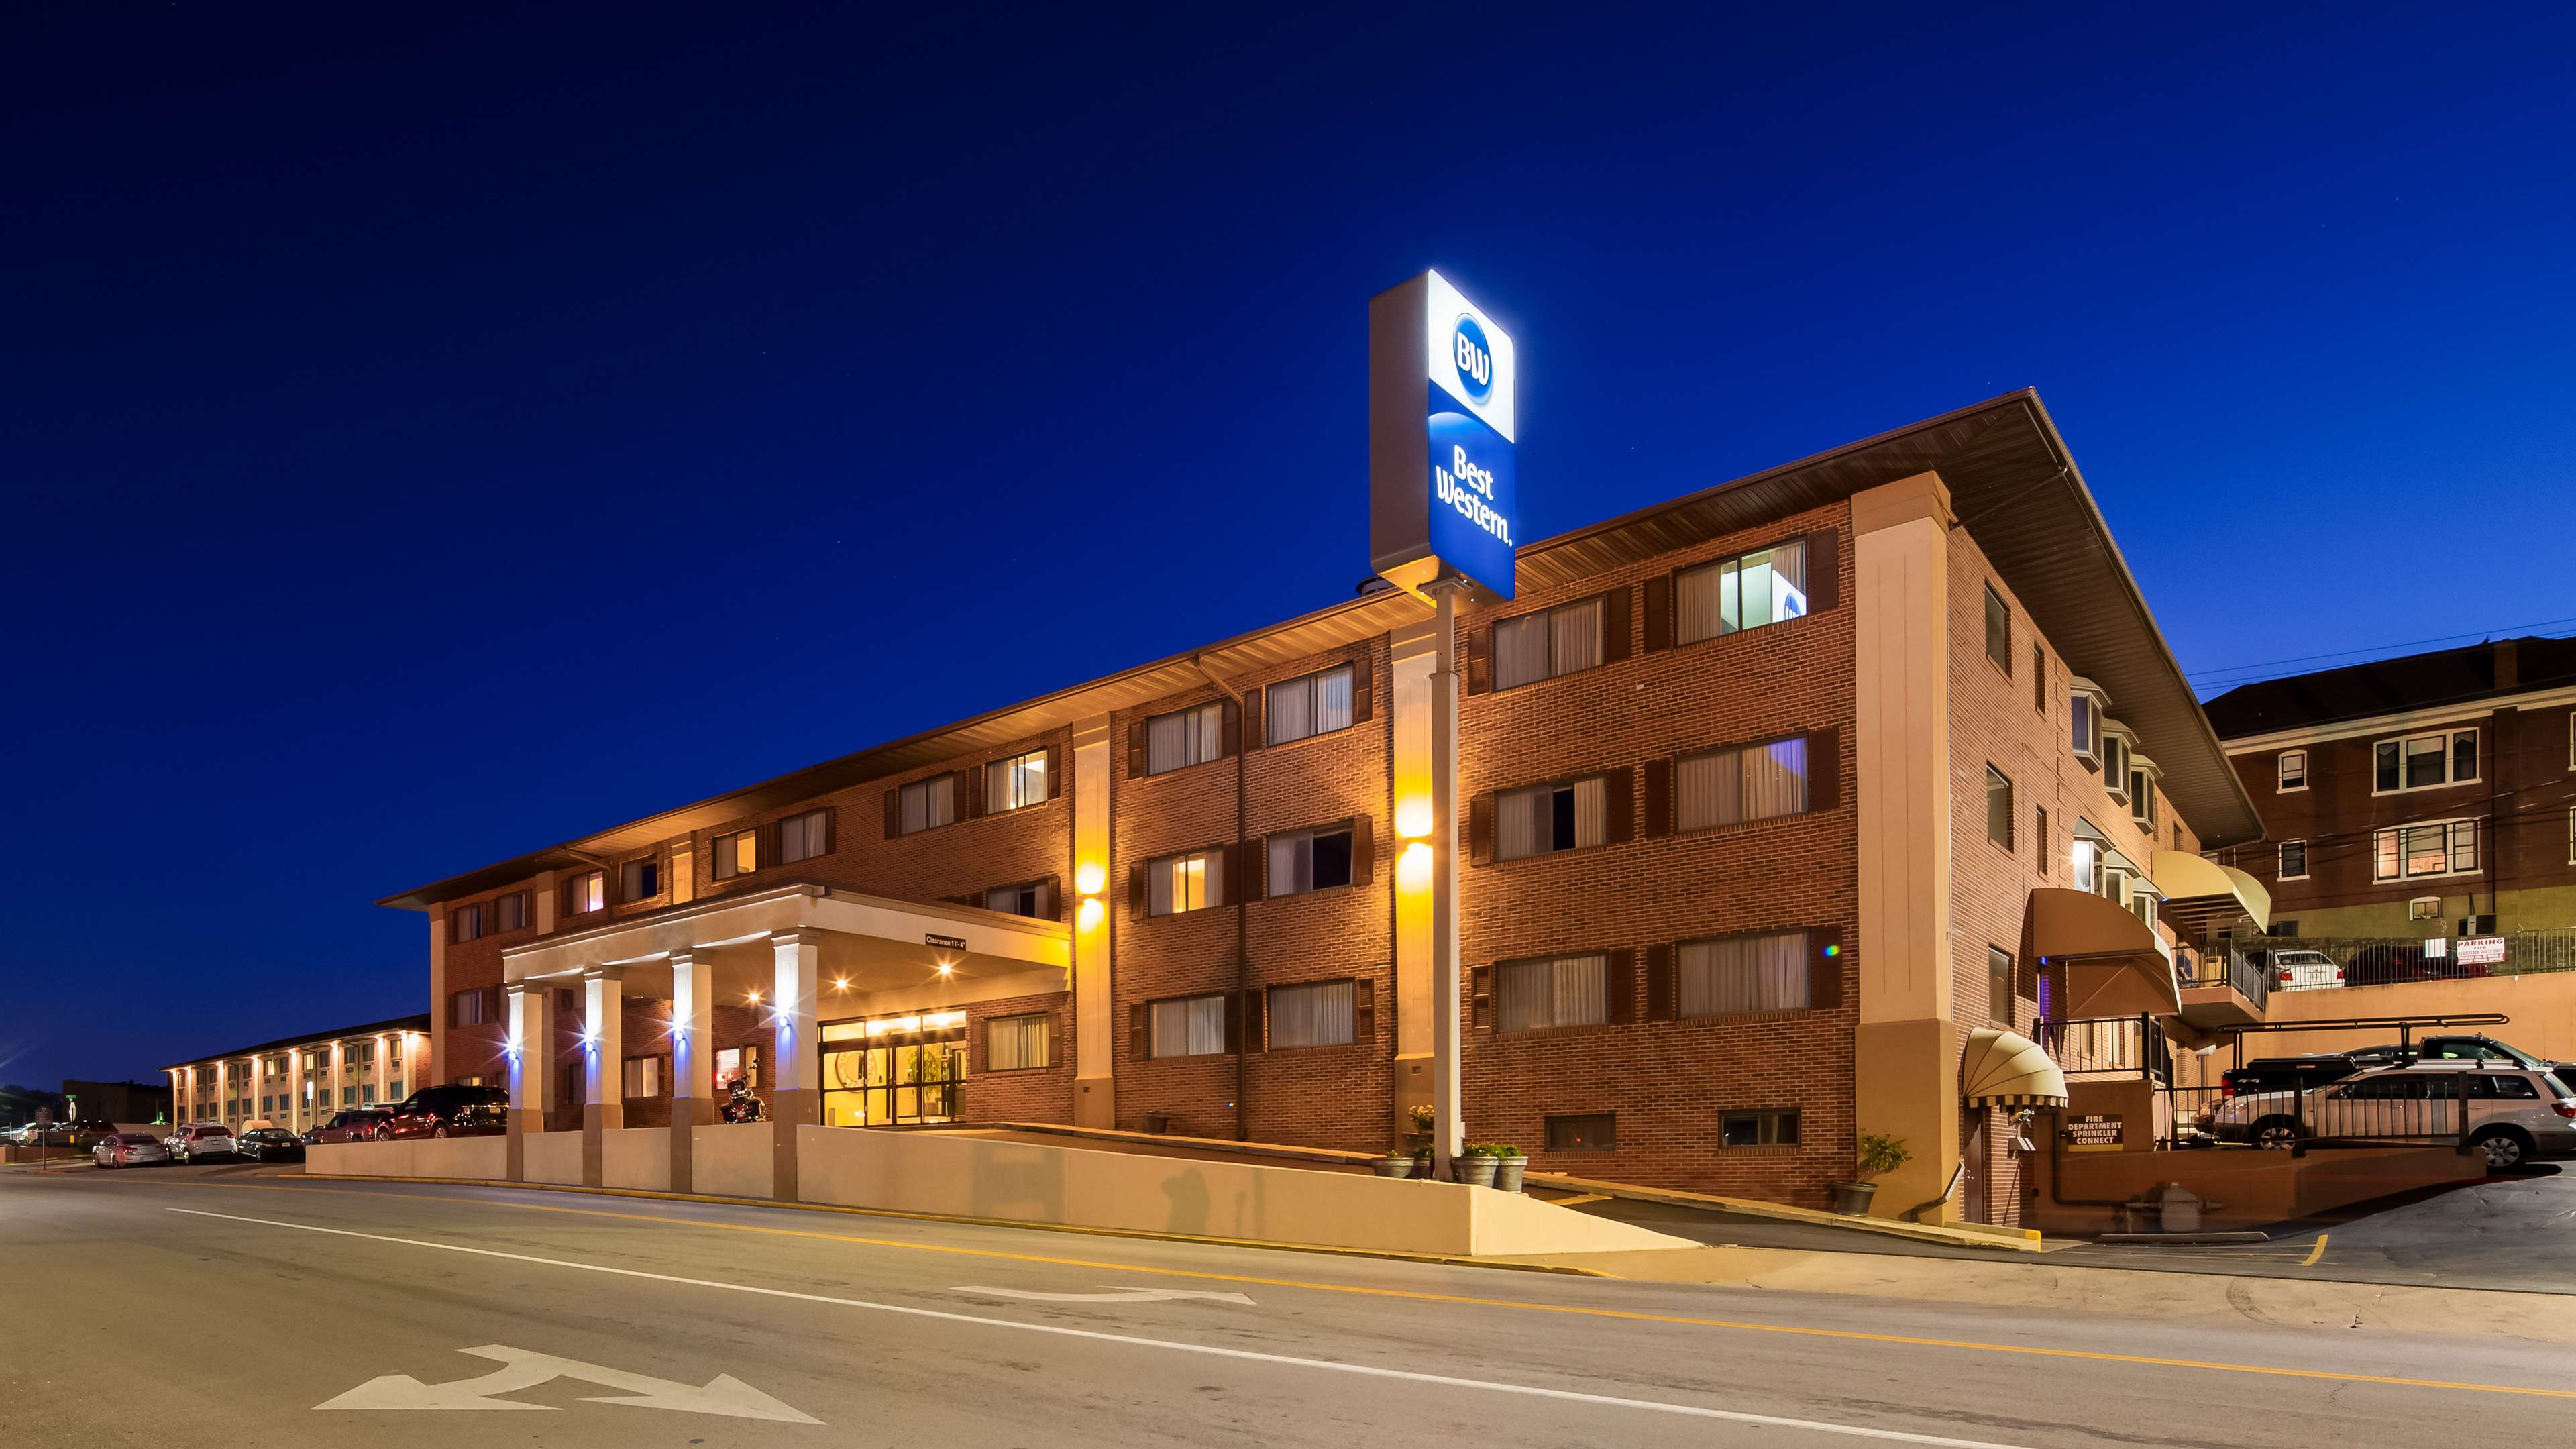 Best Western On the River image 0